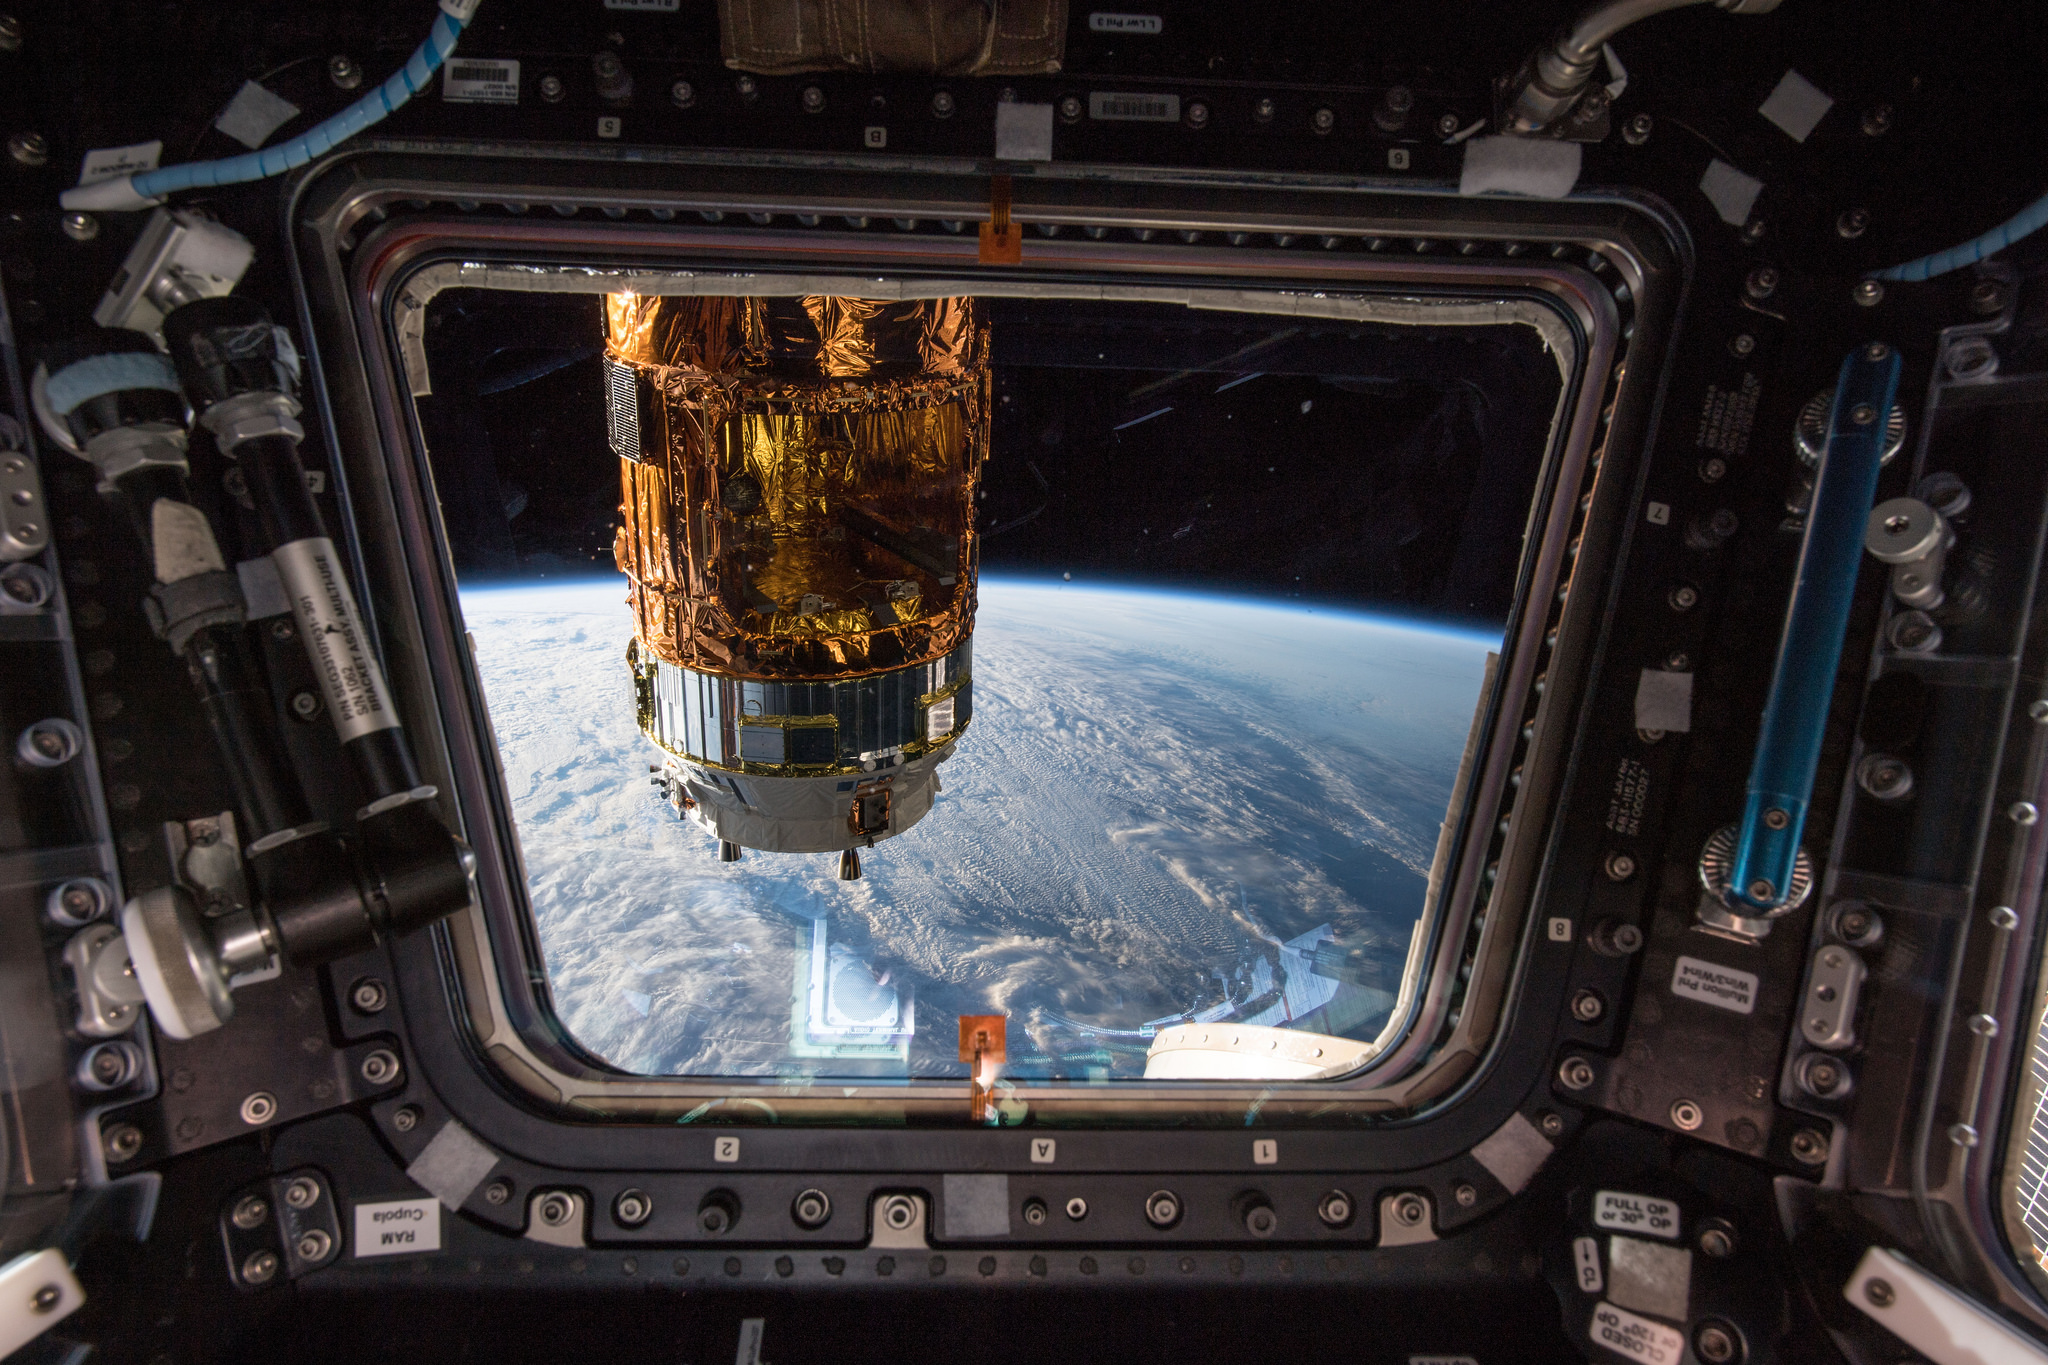 Uncrewed Japanese Vehicle Delivers Supplies to the Space Station